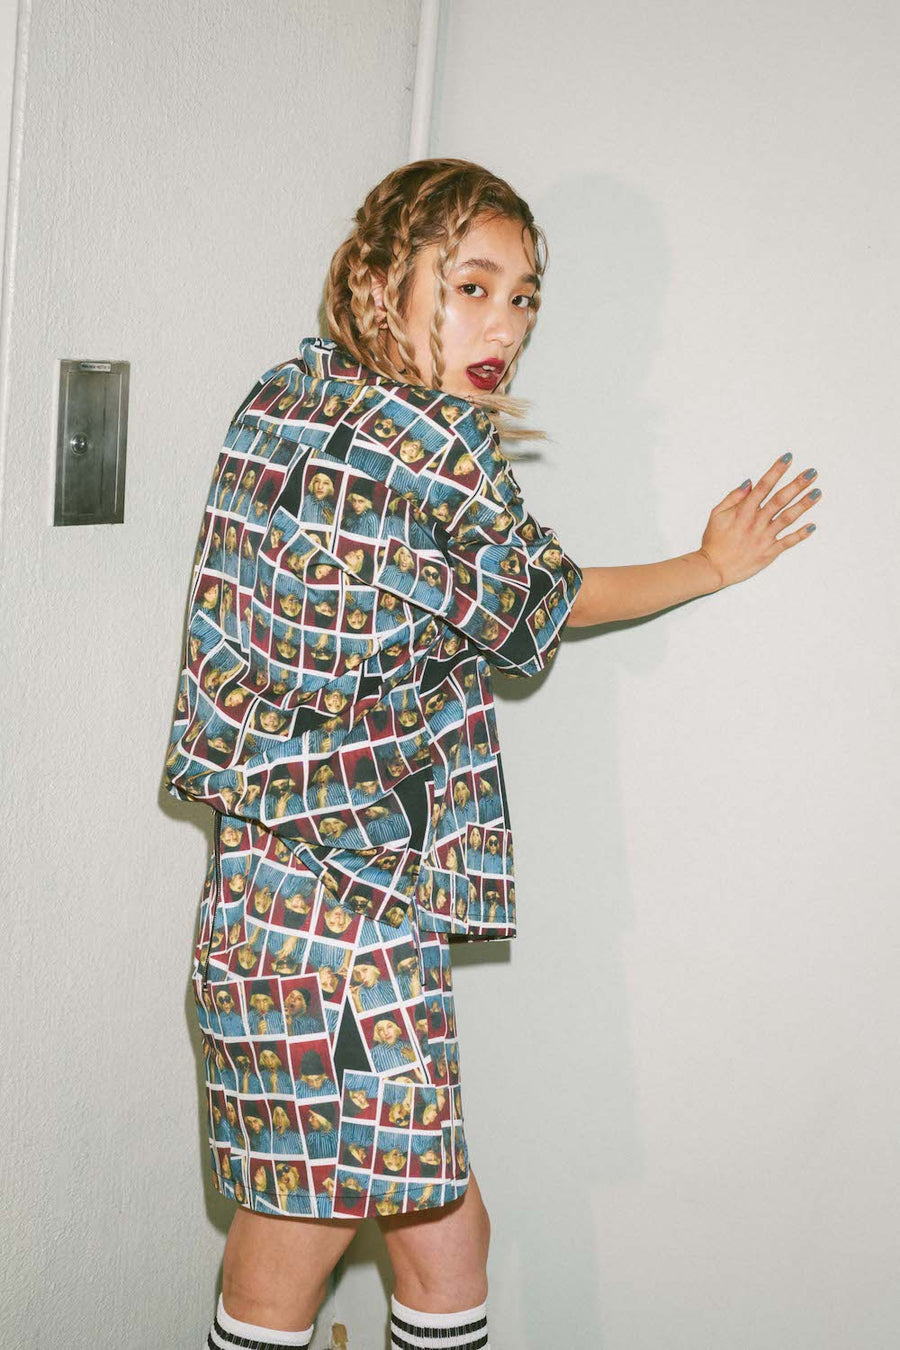 Chloe Sevigny ALL OVER PRINTED SHIRTS